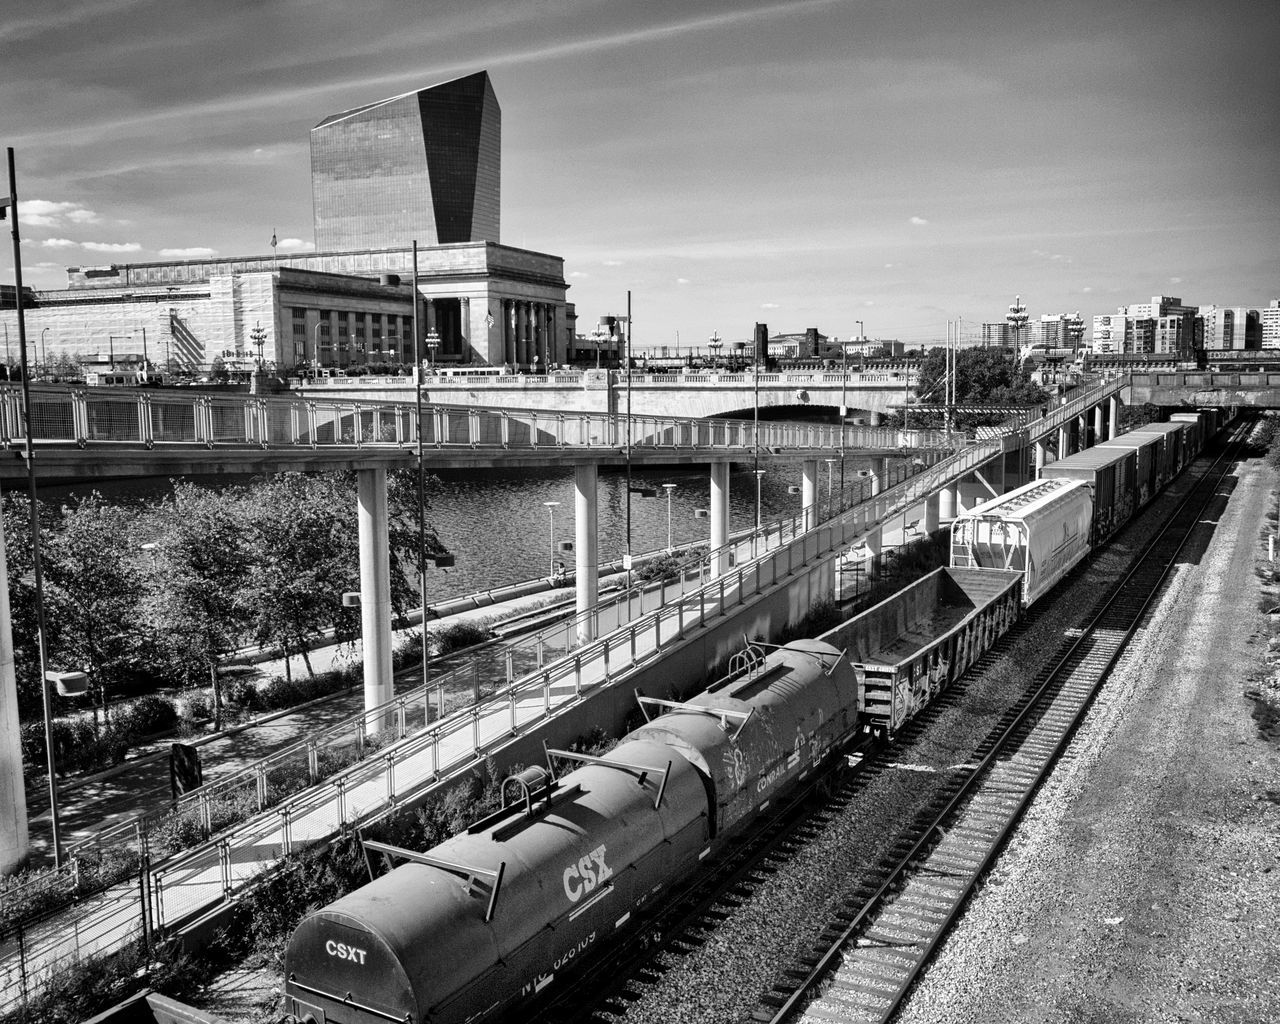 transportation, rail transportation, railroad track, architecture, built structure, train - vehicle, mode of transport, public transportation, sky, bridge - man made structure, no people, shunting yard, building exterior, day, outdoors, water, commuter train, city